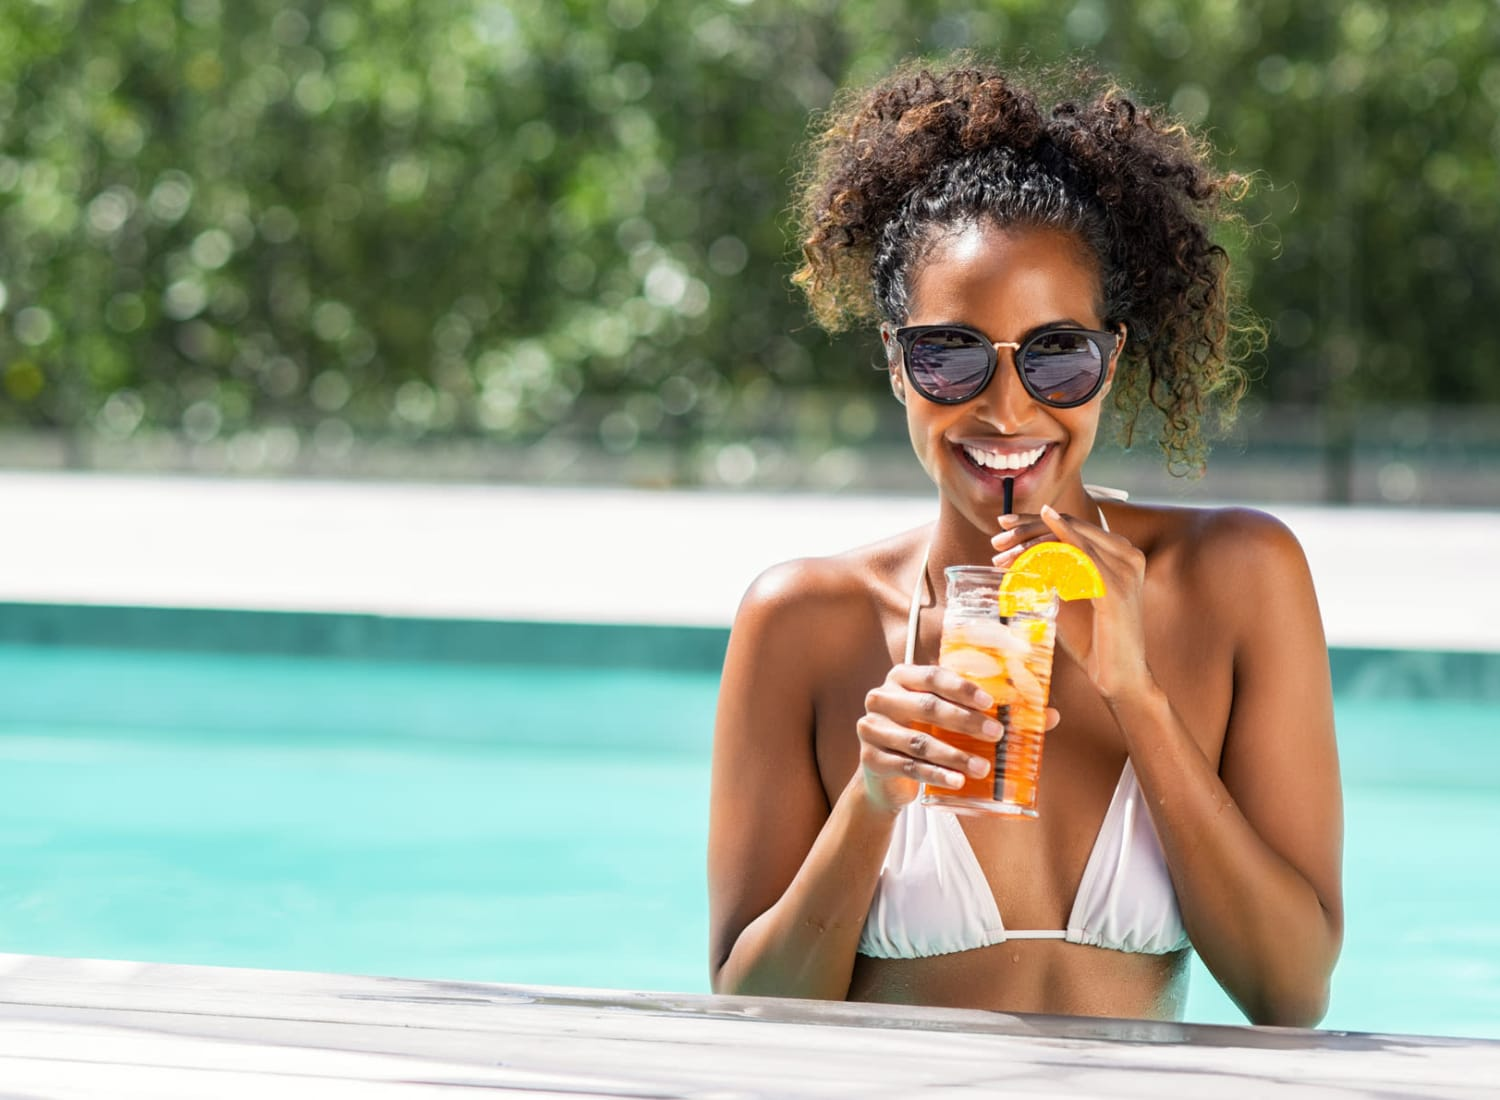 Resident at the pool enjoying a drink at The Reserve at White Oak in Garner, North Carolina